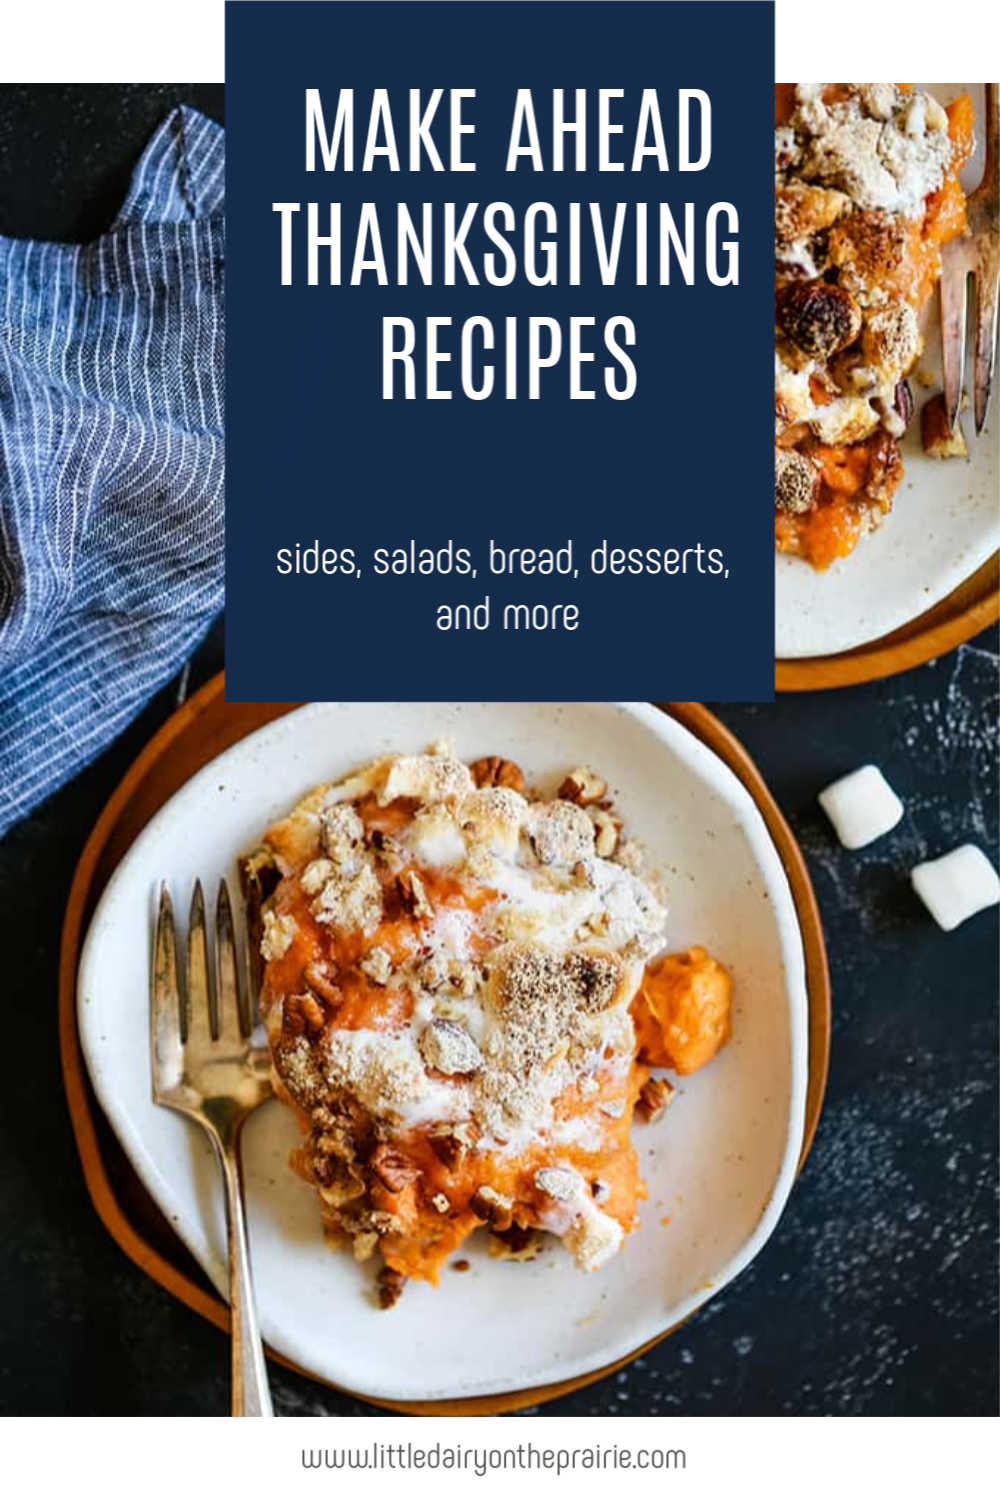 an image with plates of sweet potato casserole topped with crumb topping andwith text graphic